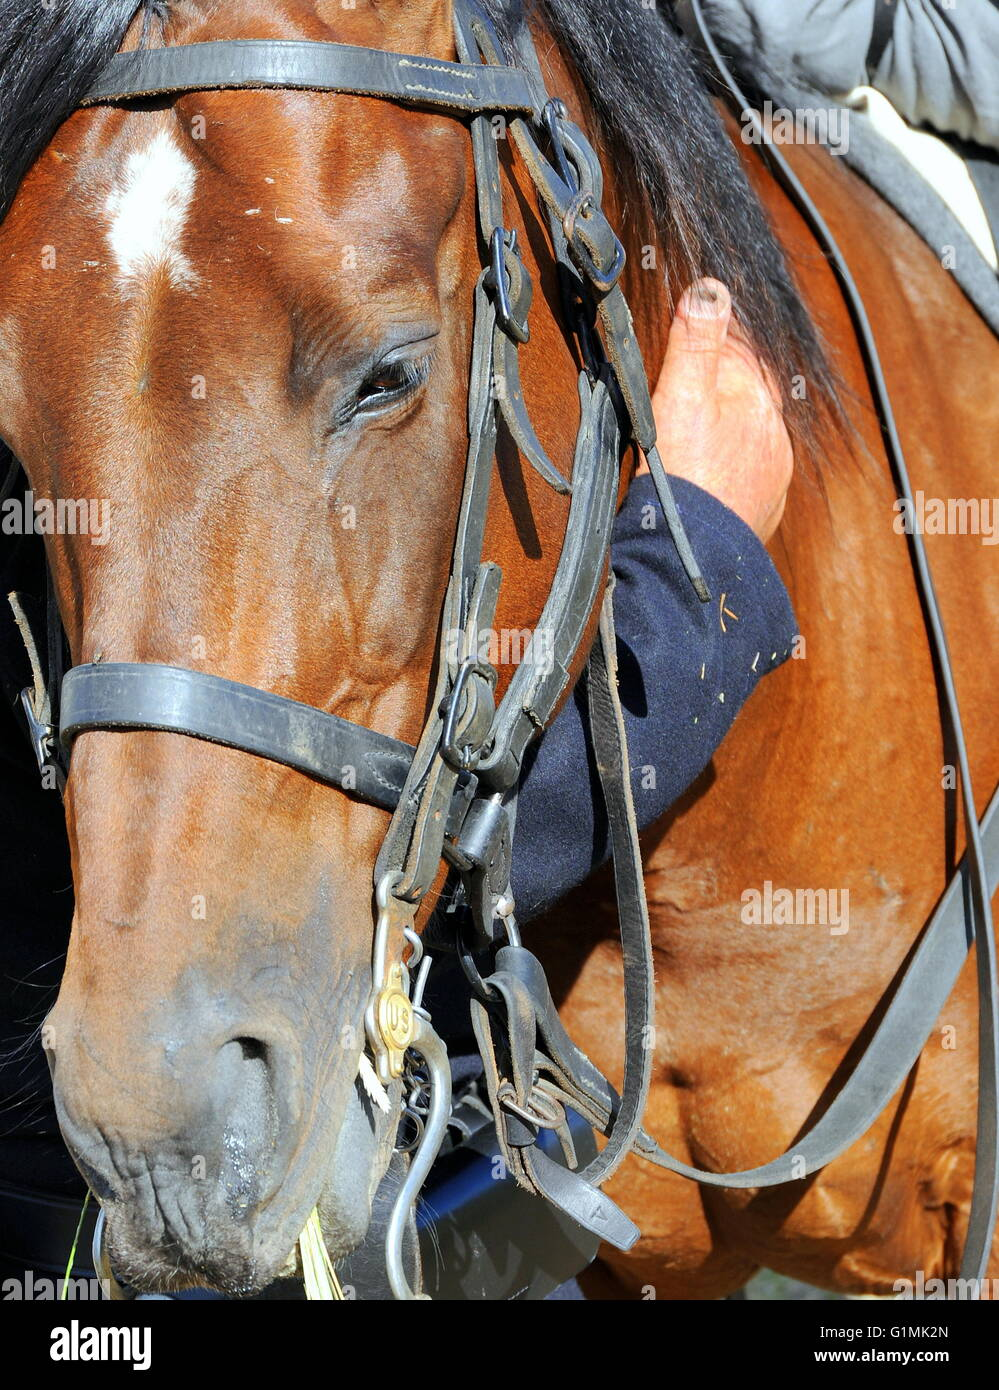 Male bonding with horse. - Stock Image